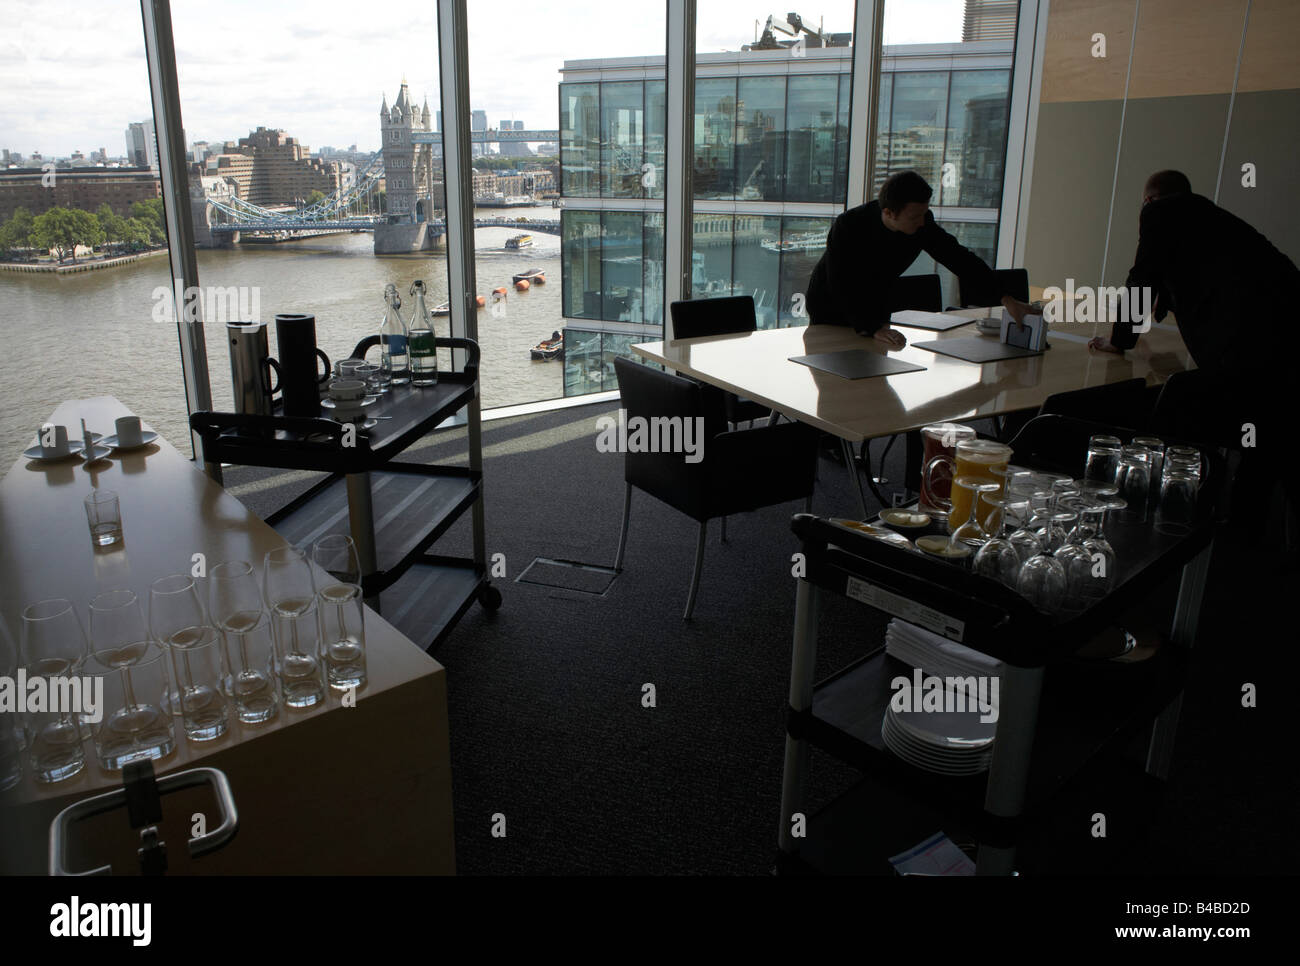 Top floor restaurant waiters prepare for executive lunch meetings in an auditing company's European headquarters - Stock Image